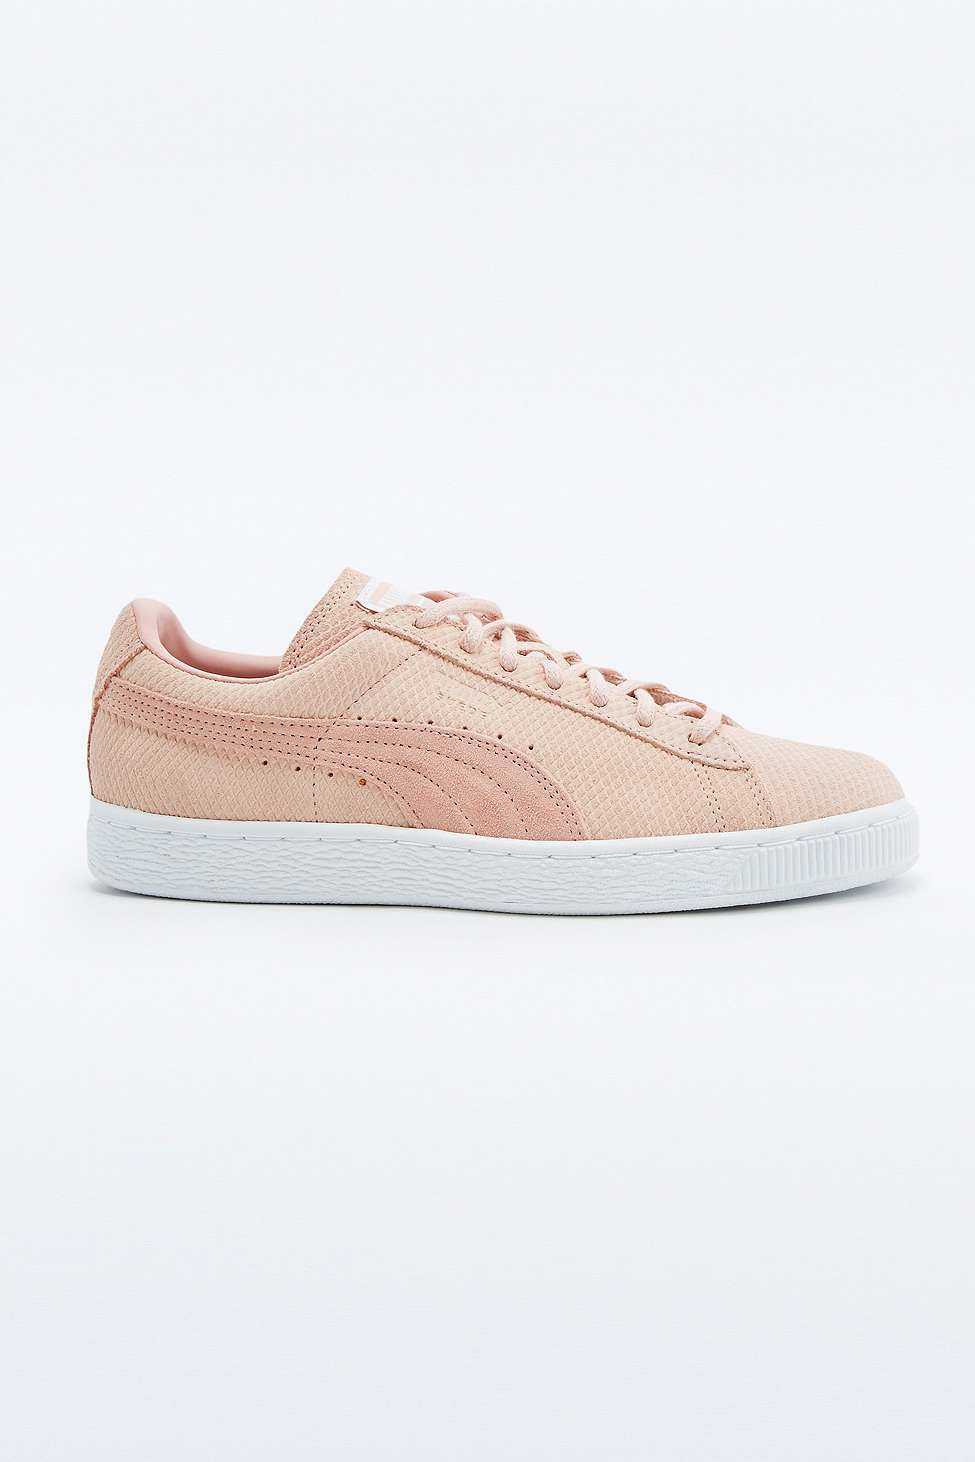 fbd5a845e6b201 Gallery. Previously sold at  Urban Outfitters · Women s Puma Classic  Women s Puma Classic Trainer ...